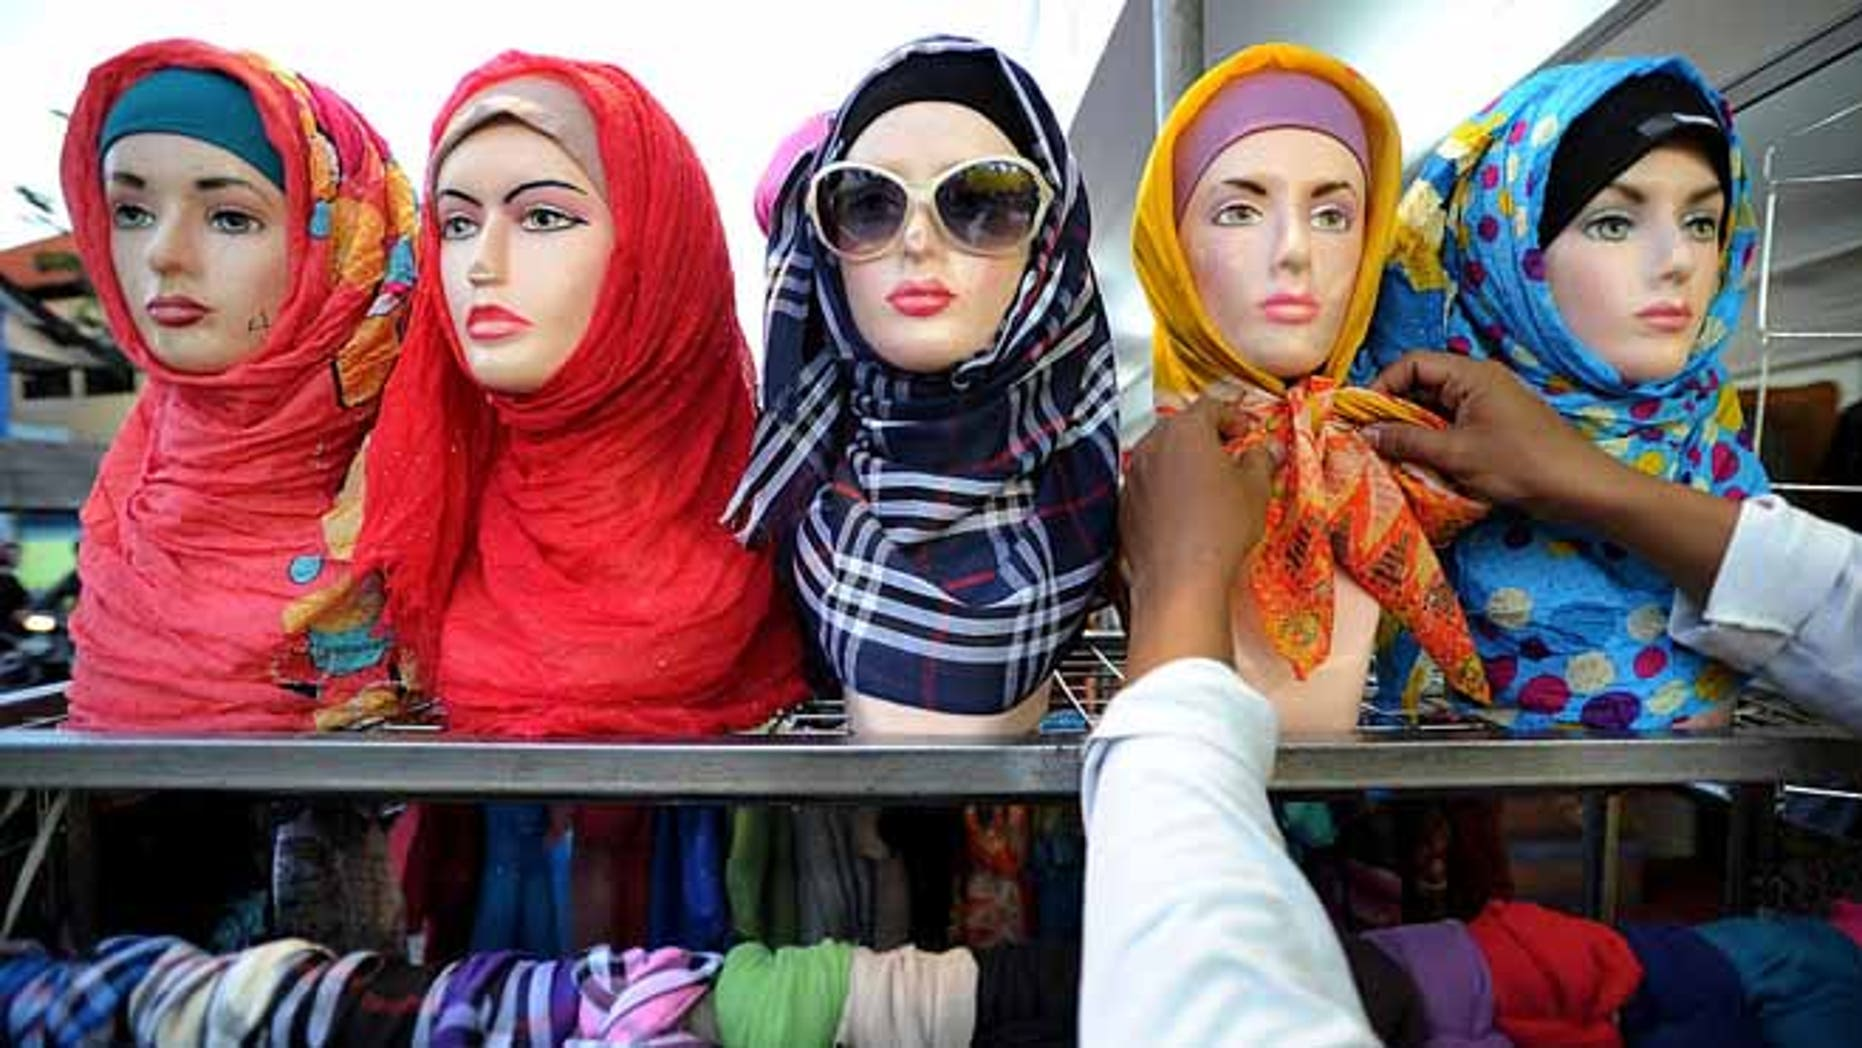 SURABAYA, INDONESIA - JUNE 17:  A vendor prepares hijabs for sale during Ramadan on June 17, 2015 in Surabaya, Indonesia. Muslims worldwide observe Ramadan, the ninth month of the Islamic calendar which is marked by a holy month of fasting, prayer, and recitation of the Quran.  (Photo by Robertus Pudyanto/Getty Images)